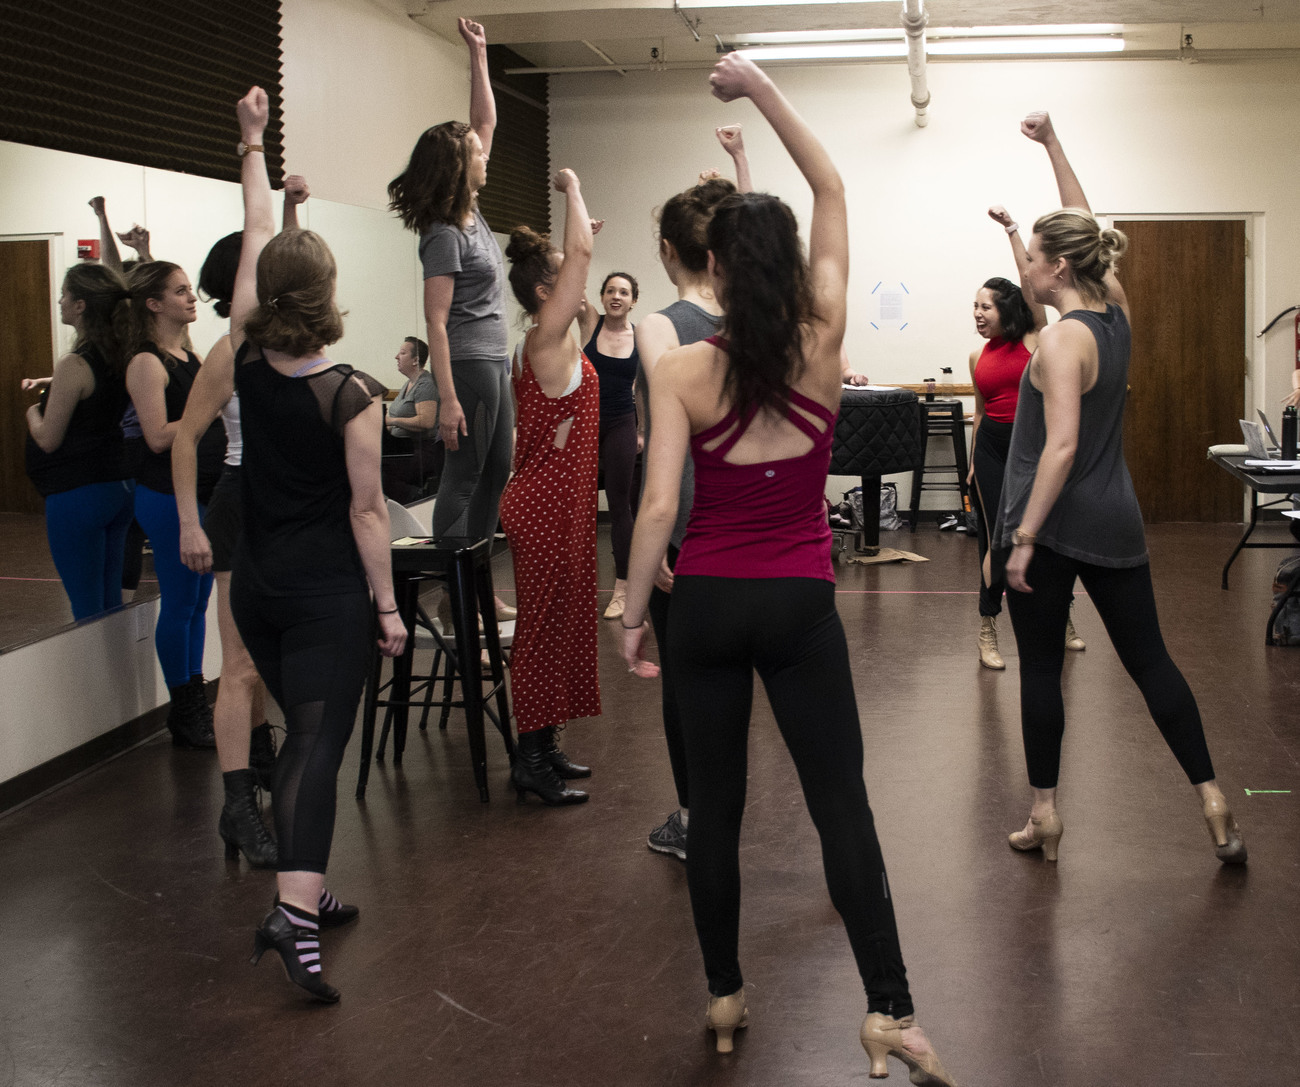 BWW Review: Women are 'Stronger Together Than Alone' in THE BACHELOR GIRLS